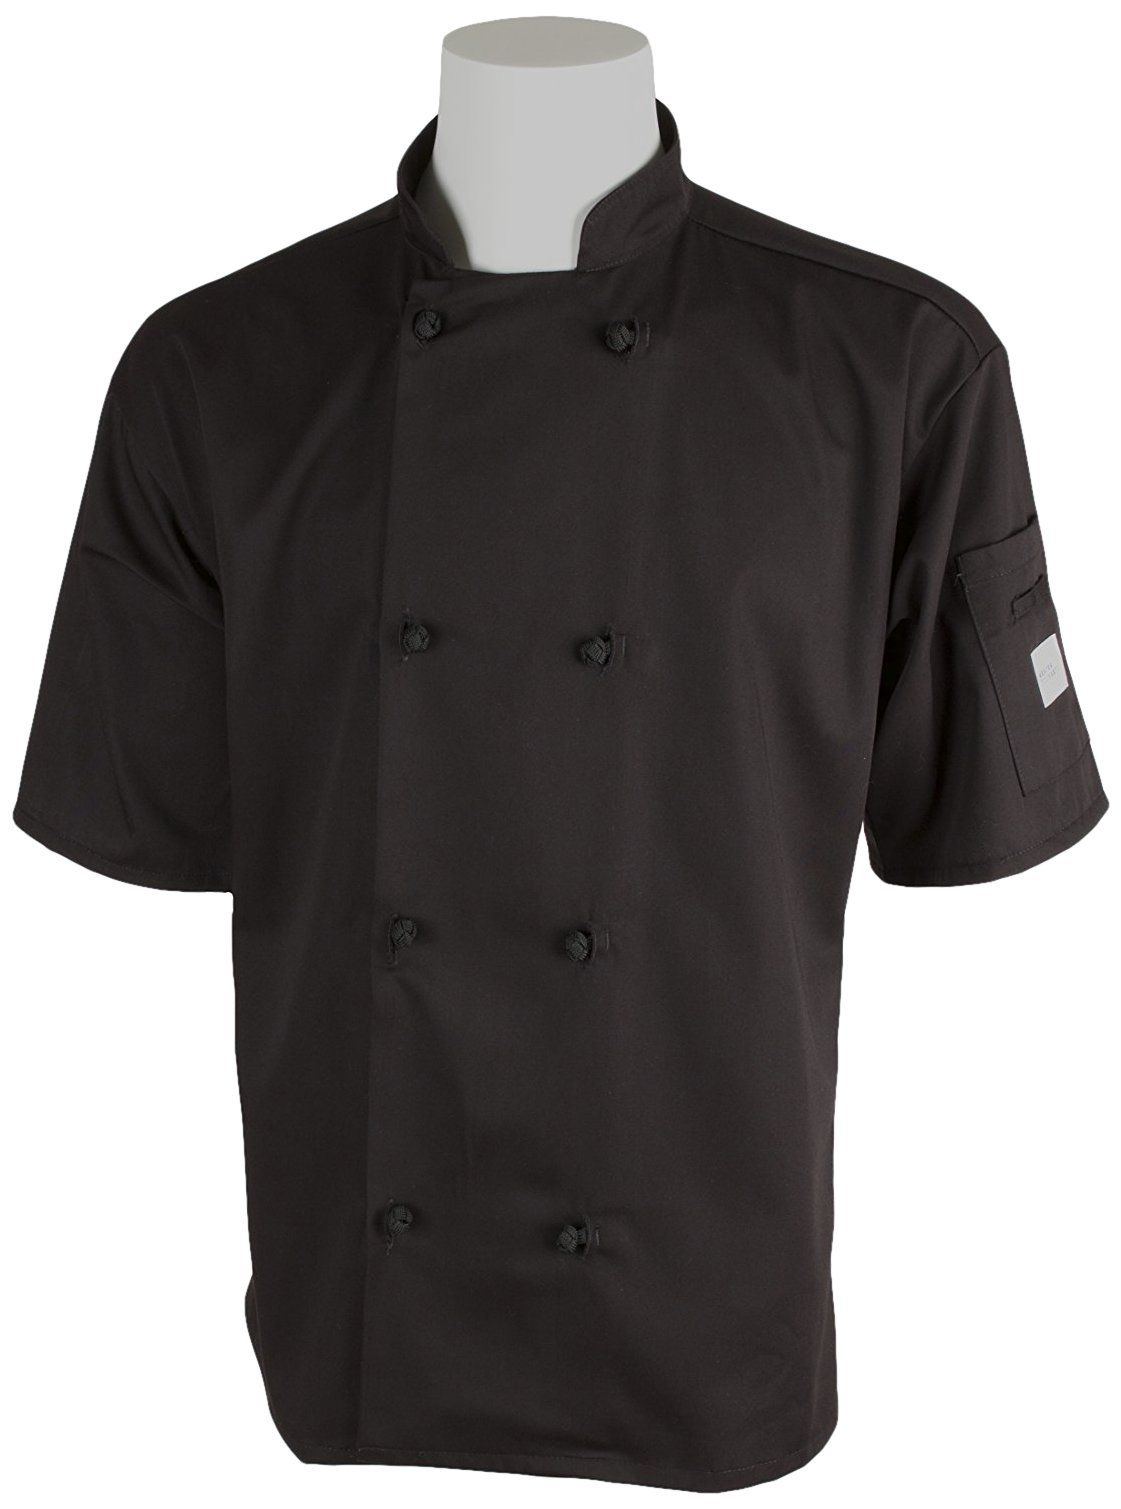 Mercer Culinary M60014BK5X Millennia Men's Short Sleeve Cook Jacket with Cloth Knot Buttons, 5X-Large, Black